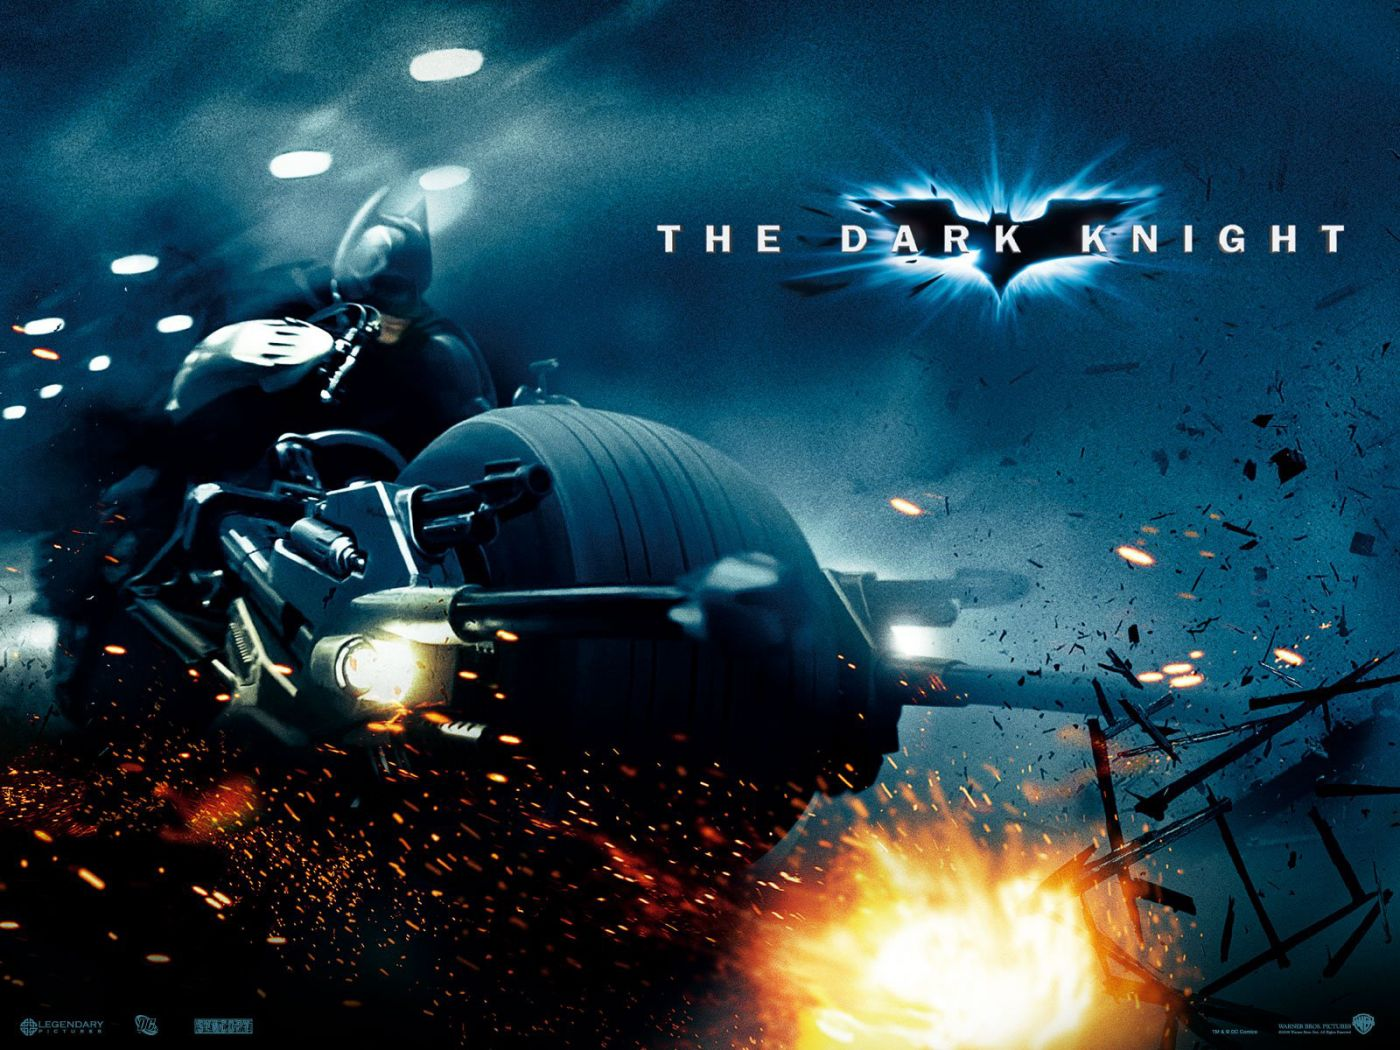 Batman Riding Motorcycle Poster Wallpaper 1400x1050